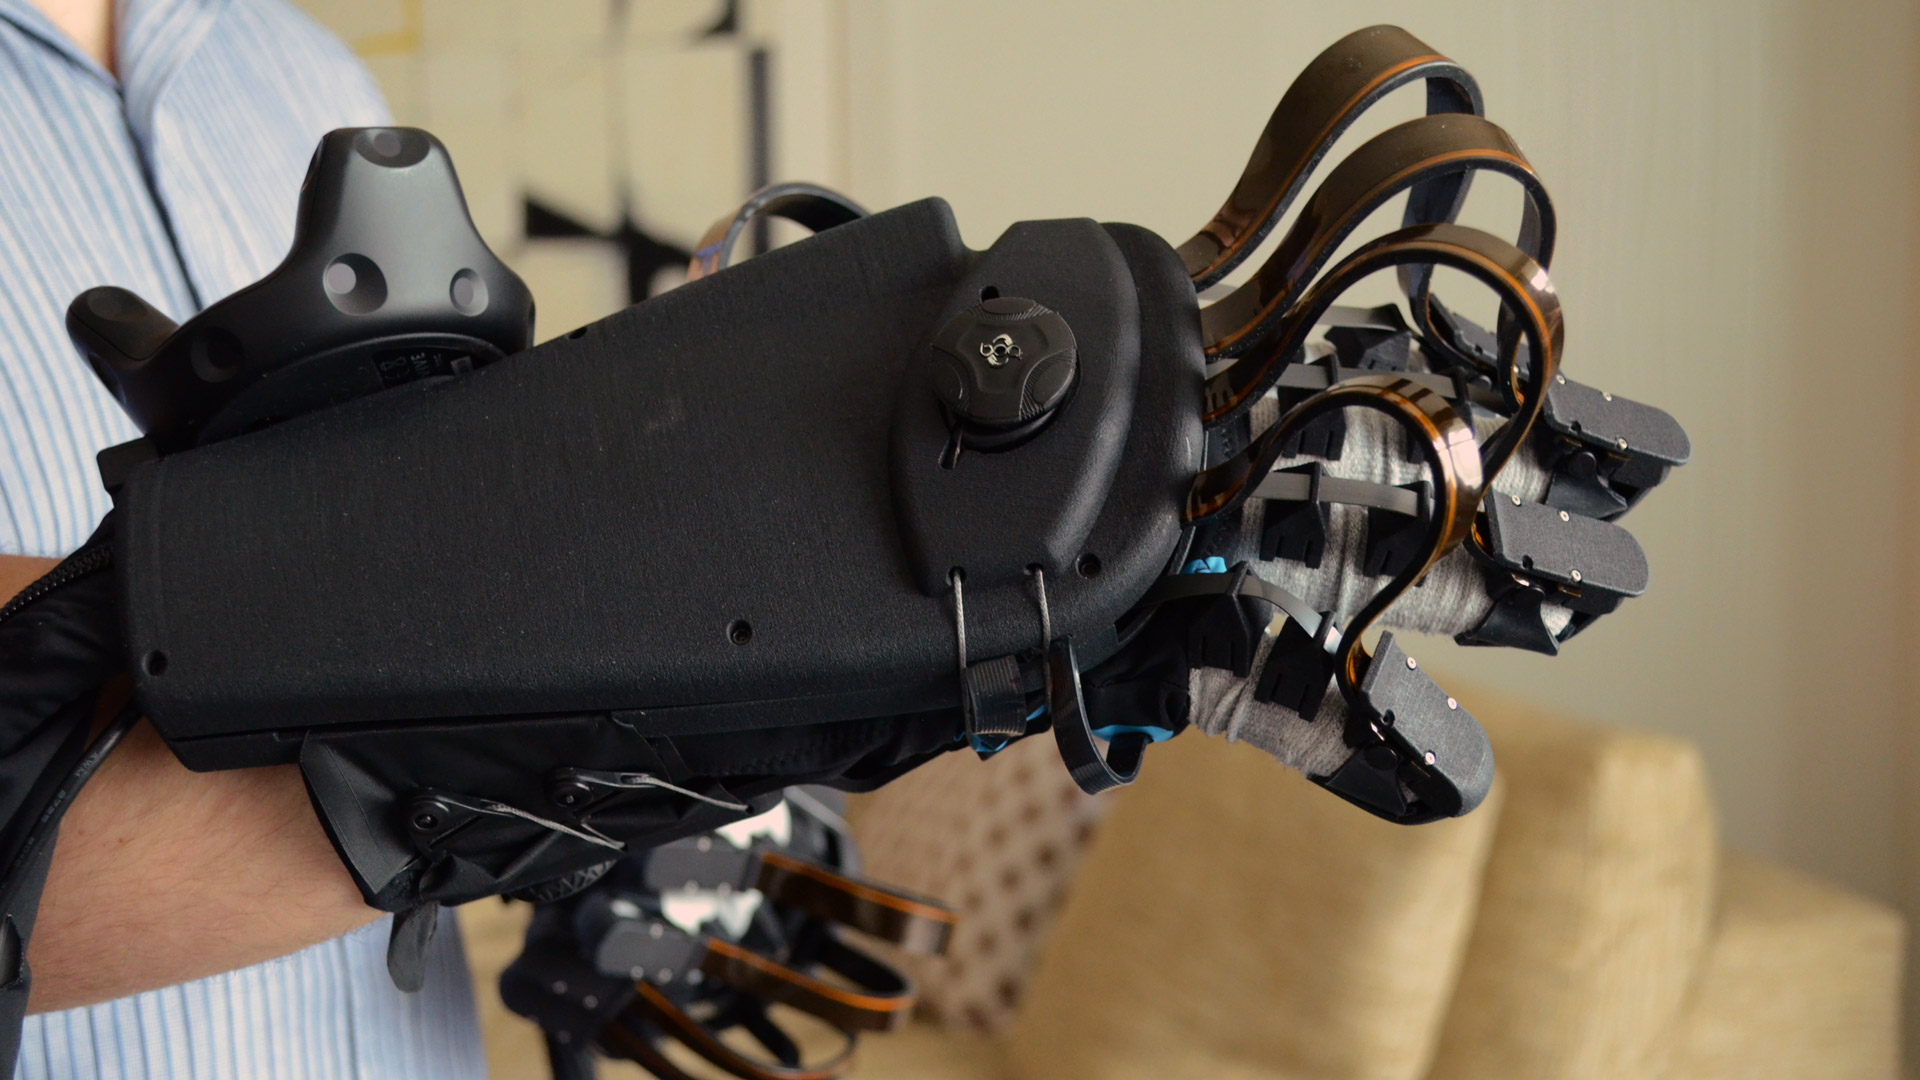 Hands-on: Dexmo Haptic Force-feedback VR Gloves are Compact and Wireless